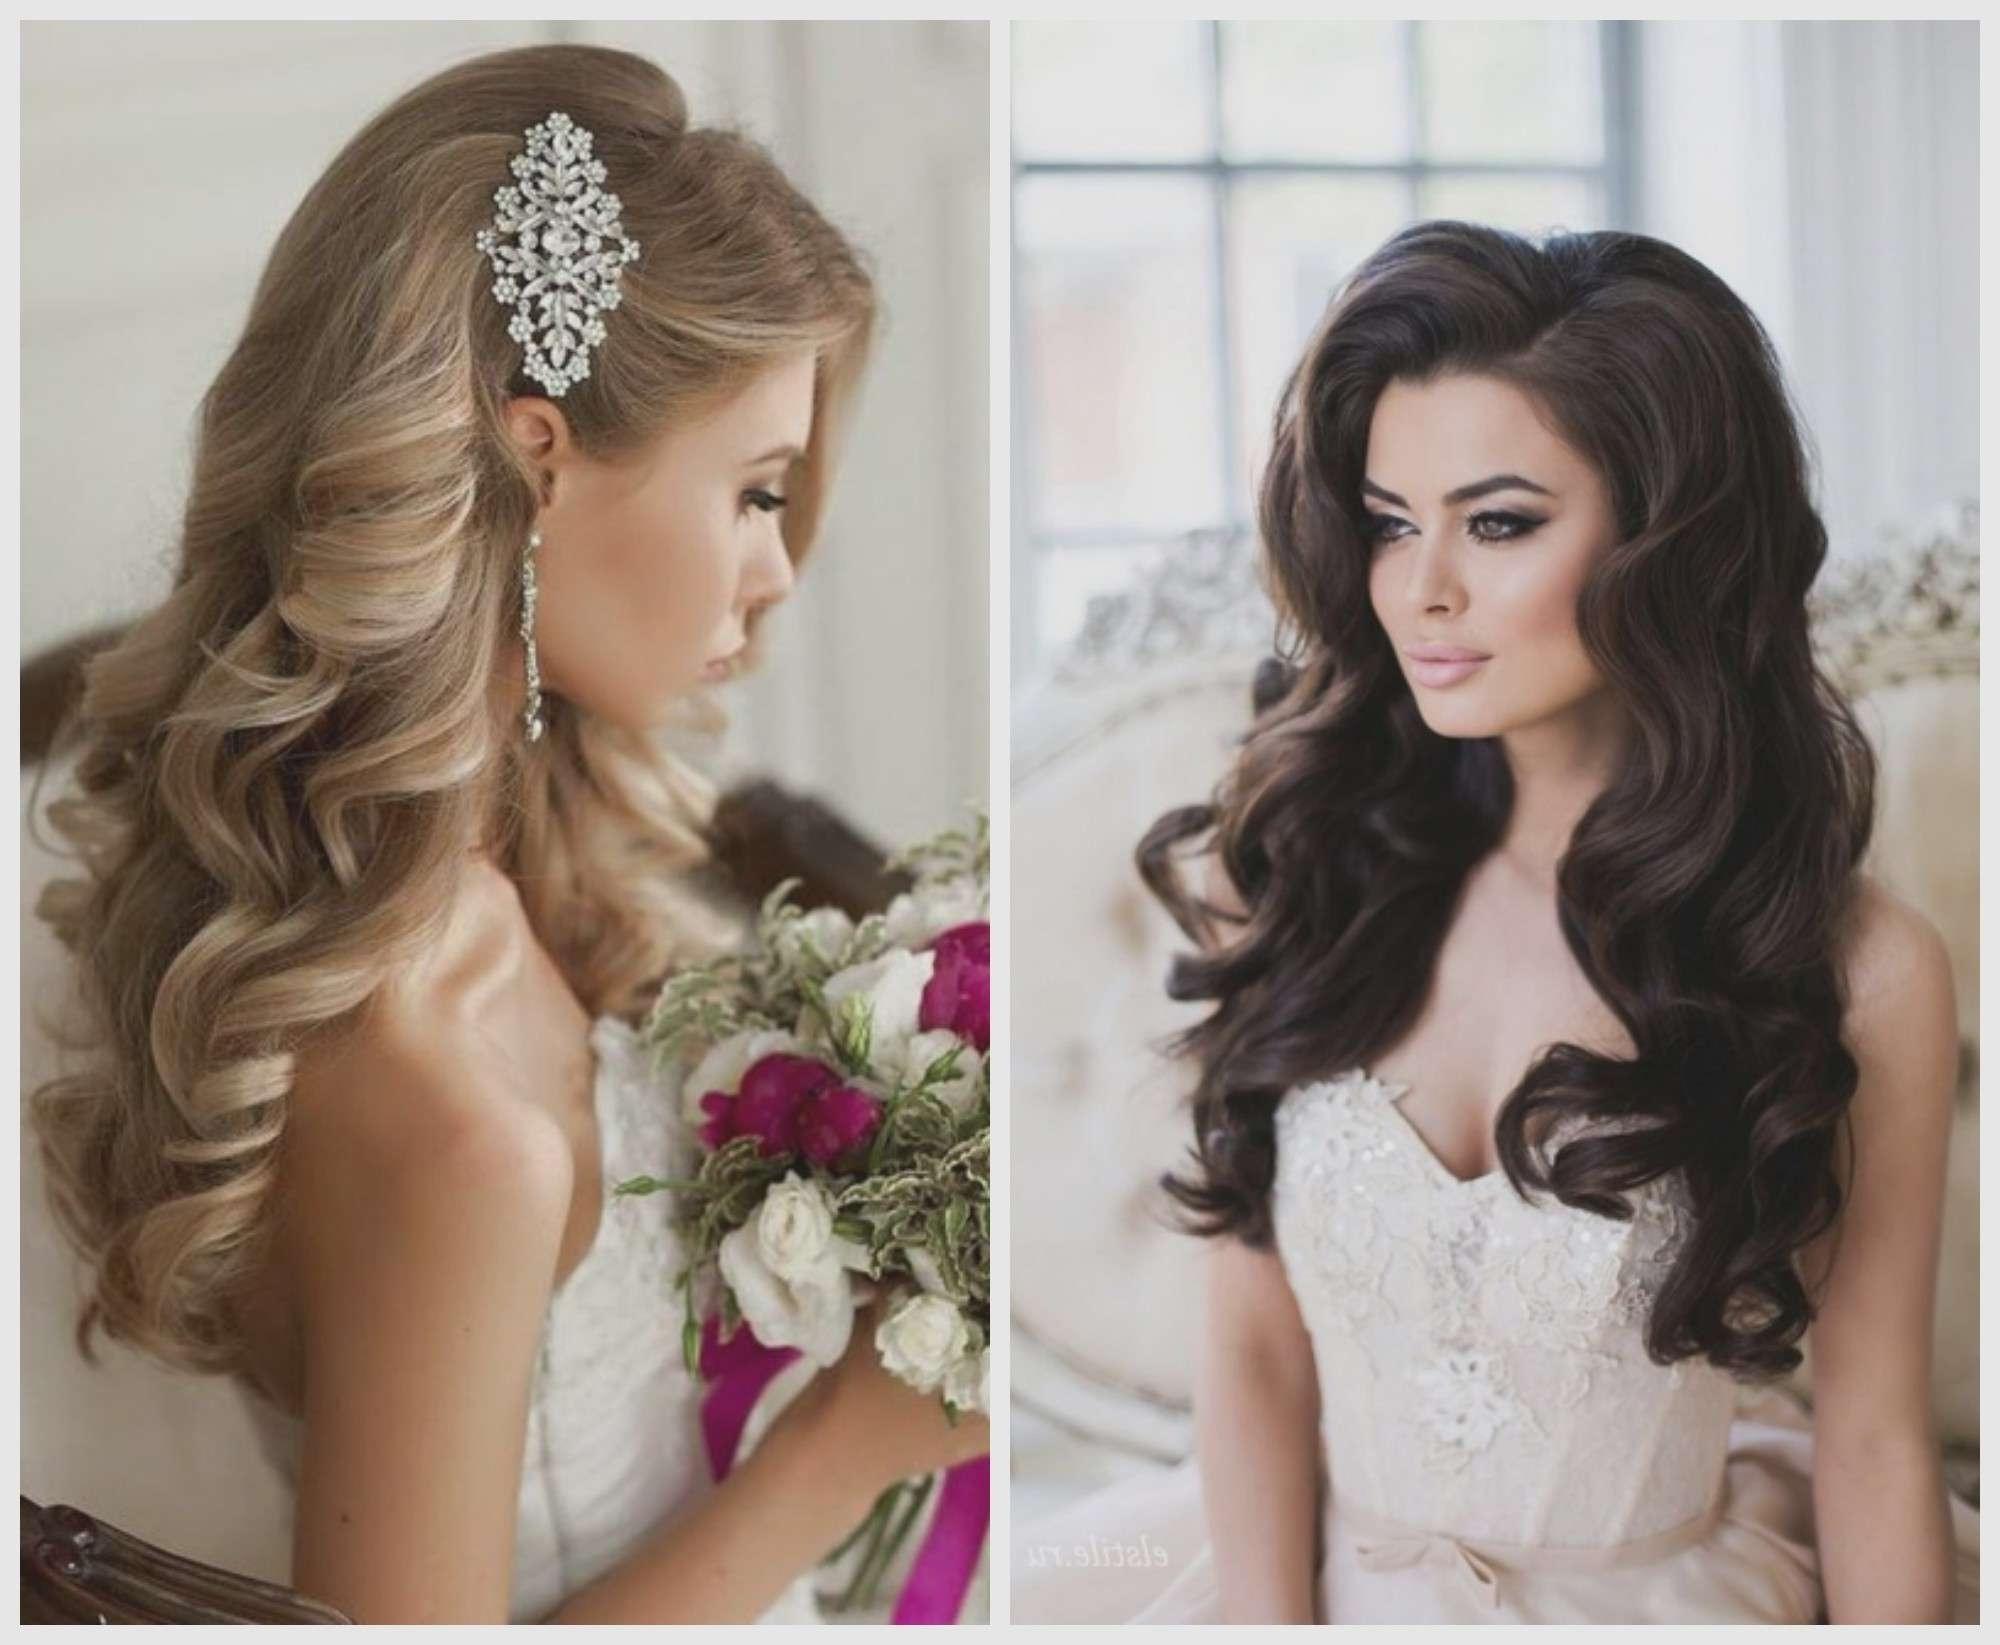 Wedding Day Hairstyles Best Of Wedding Hairstyles For Long Loose In Widely Used Wedding Hairstyles For Long Loose Hair (View 13 of 15)